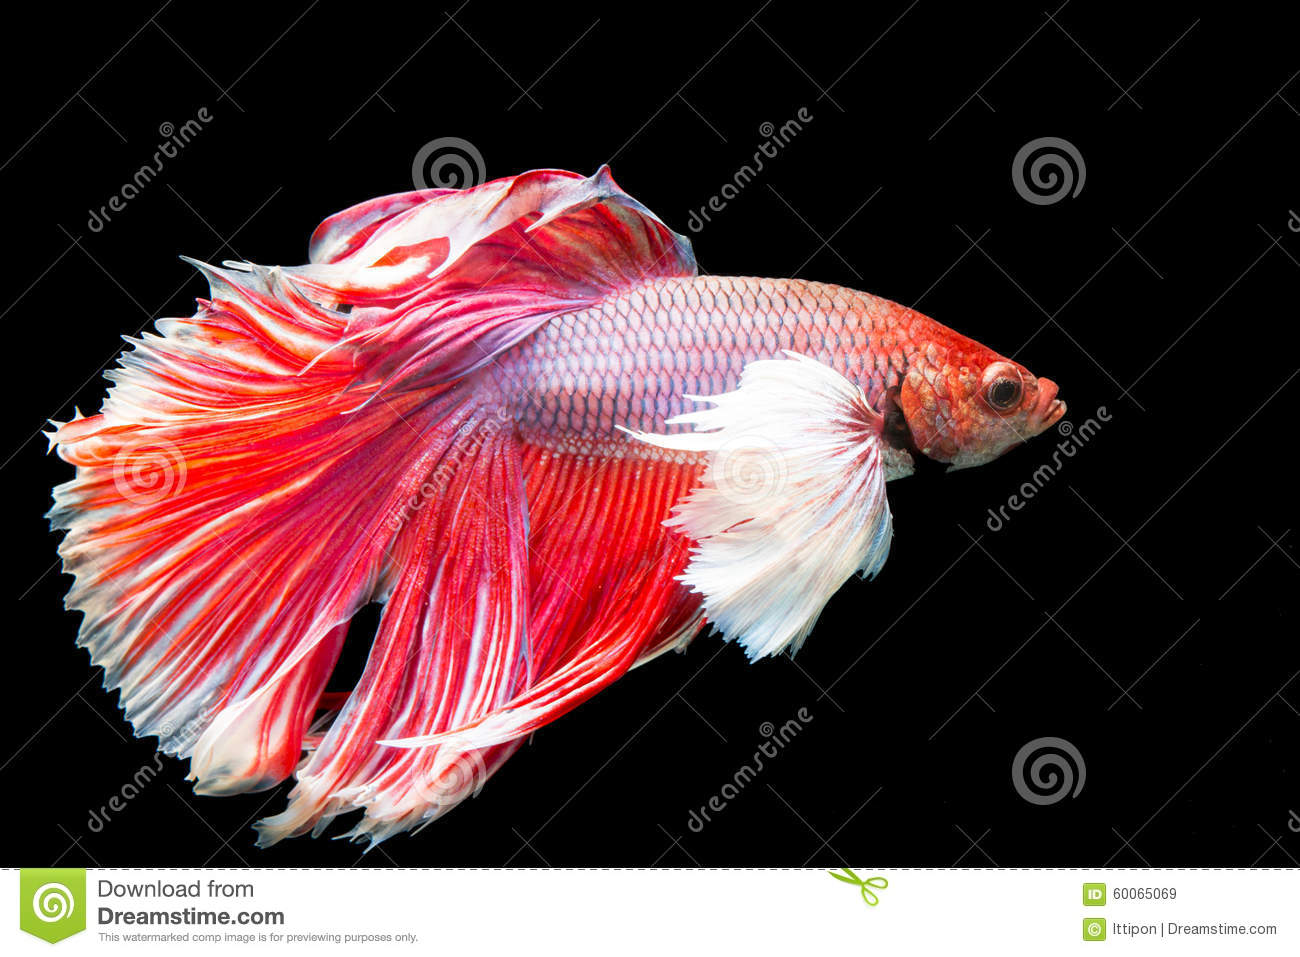 Fish tail fish beautiful - photo#14